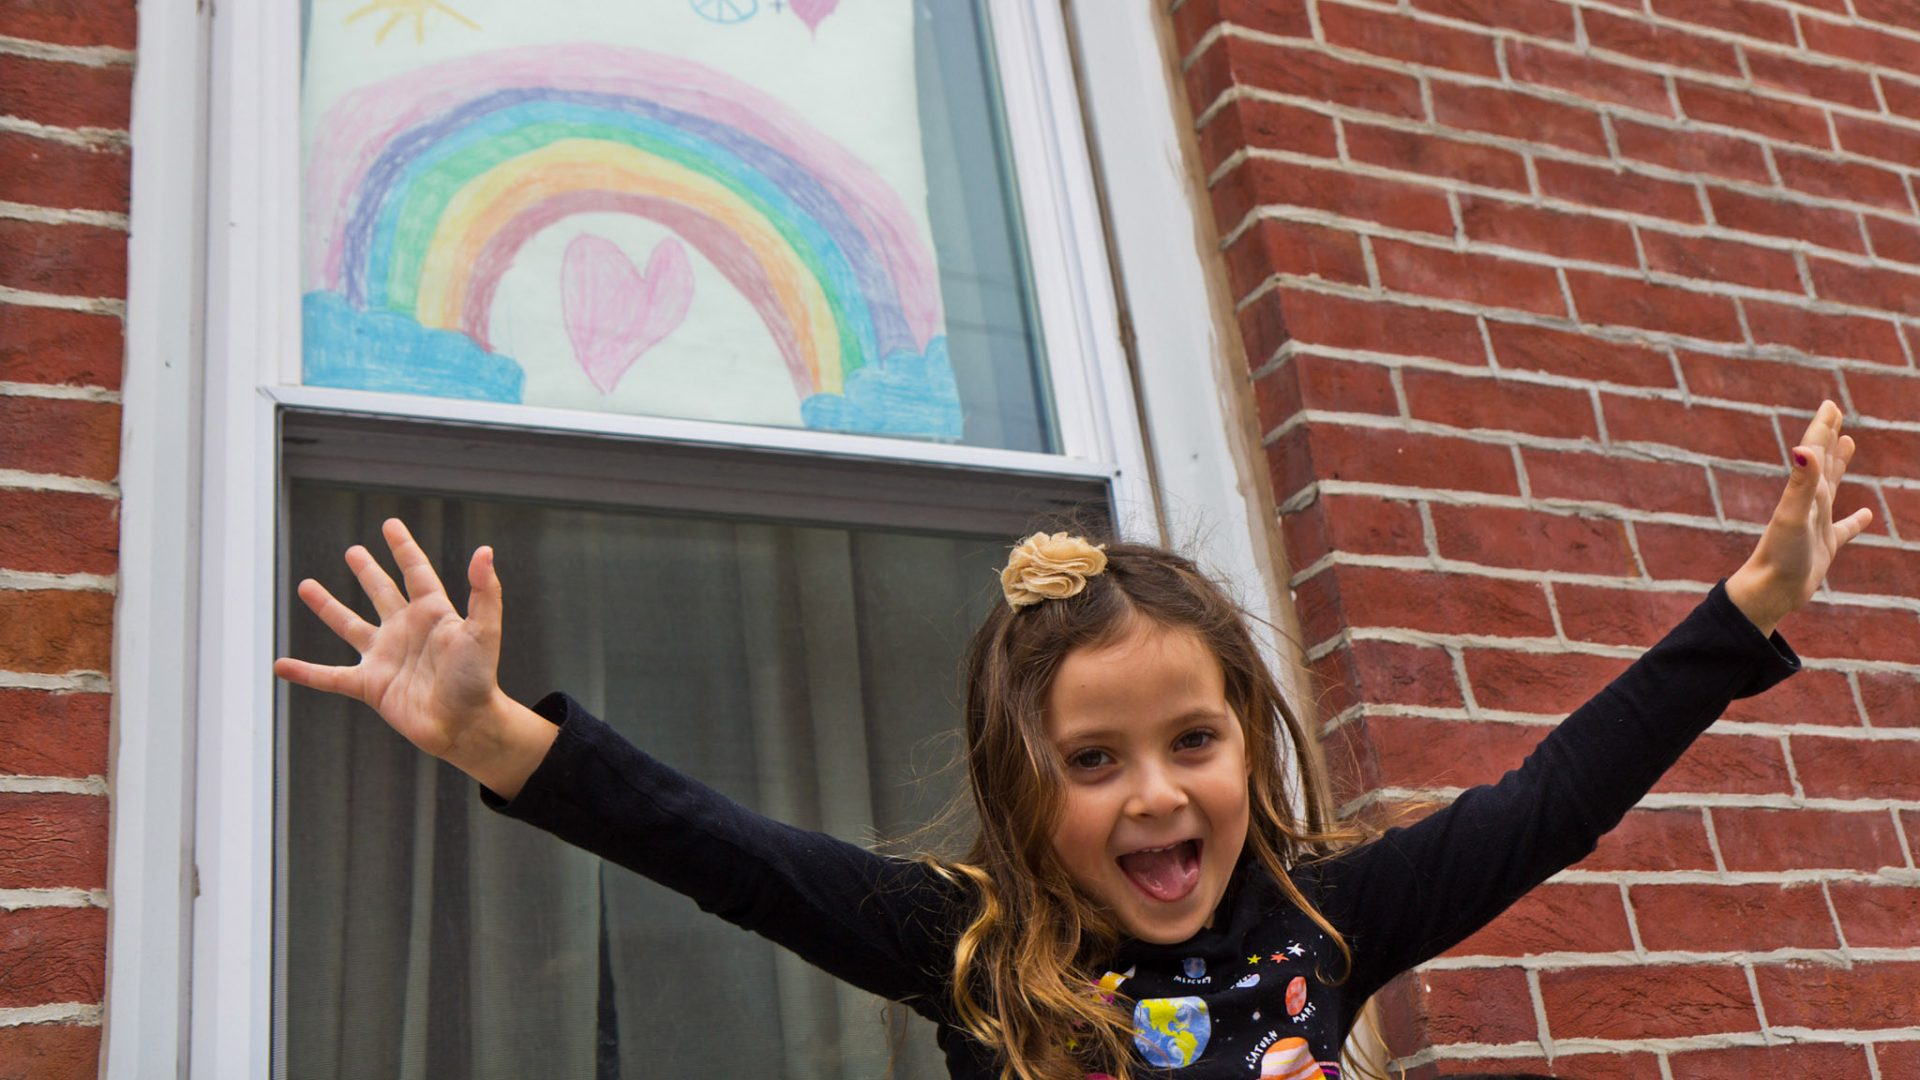 Bowie Moon Porter drew this rainbow in Philadelphia's Fishtown neighborhood